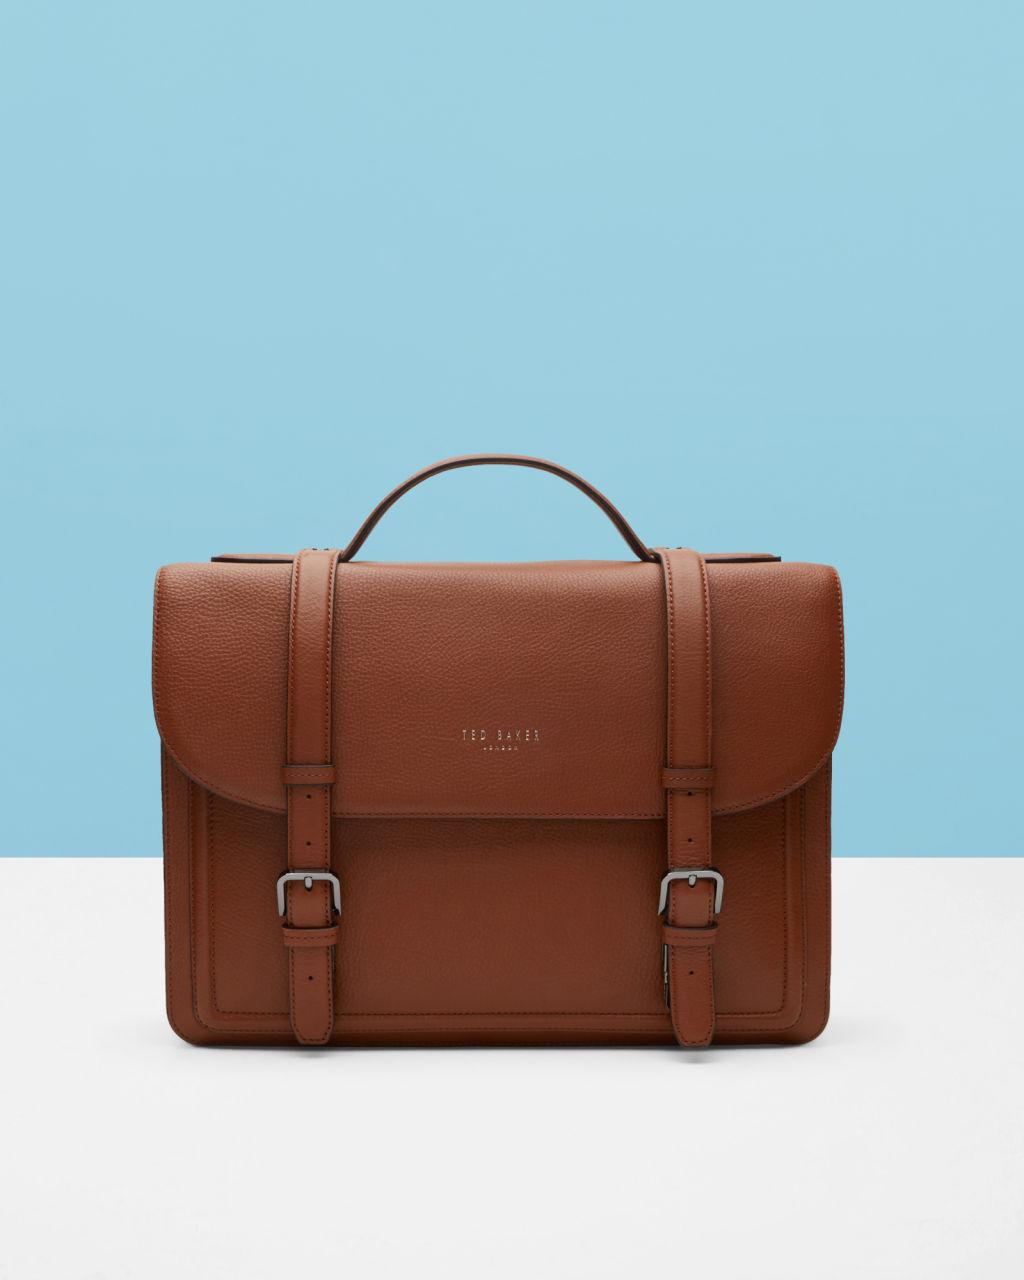 4ad28204b Ted Baker Philippines - Ted Baker Bags for Women for sale - prices ...